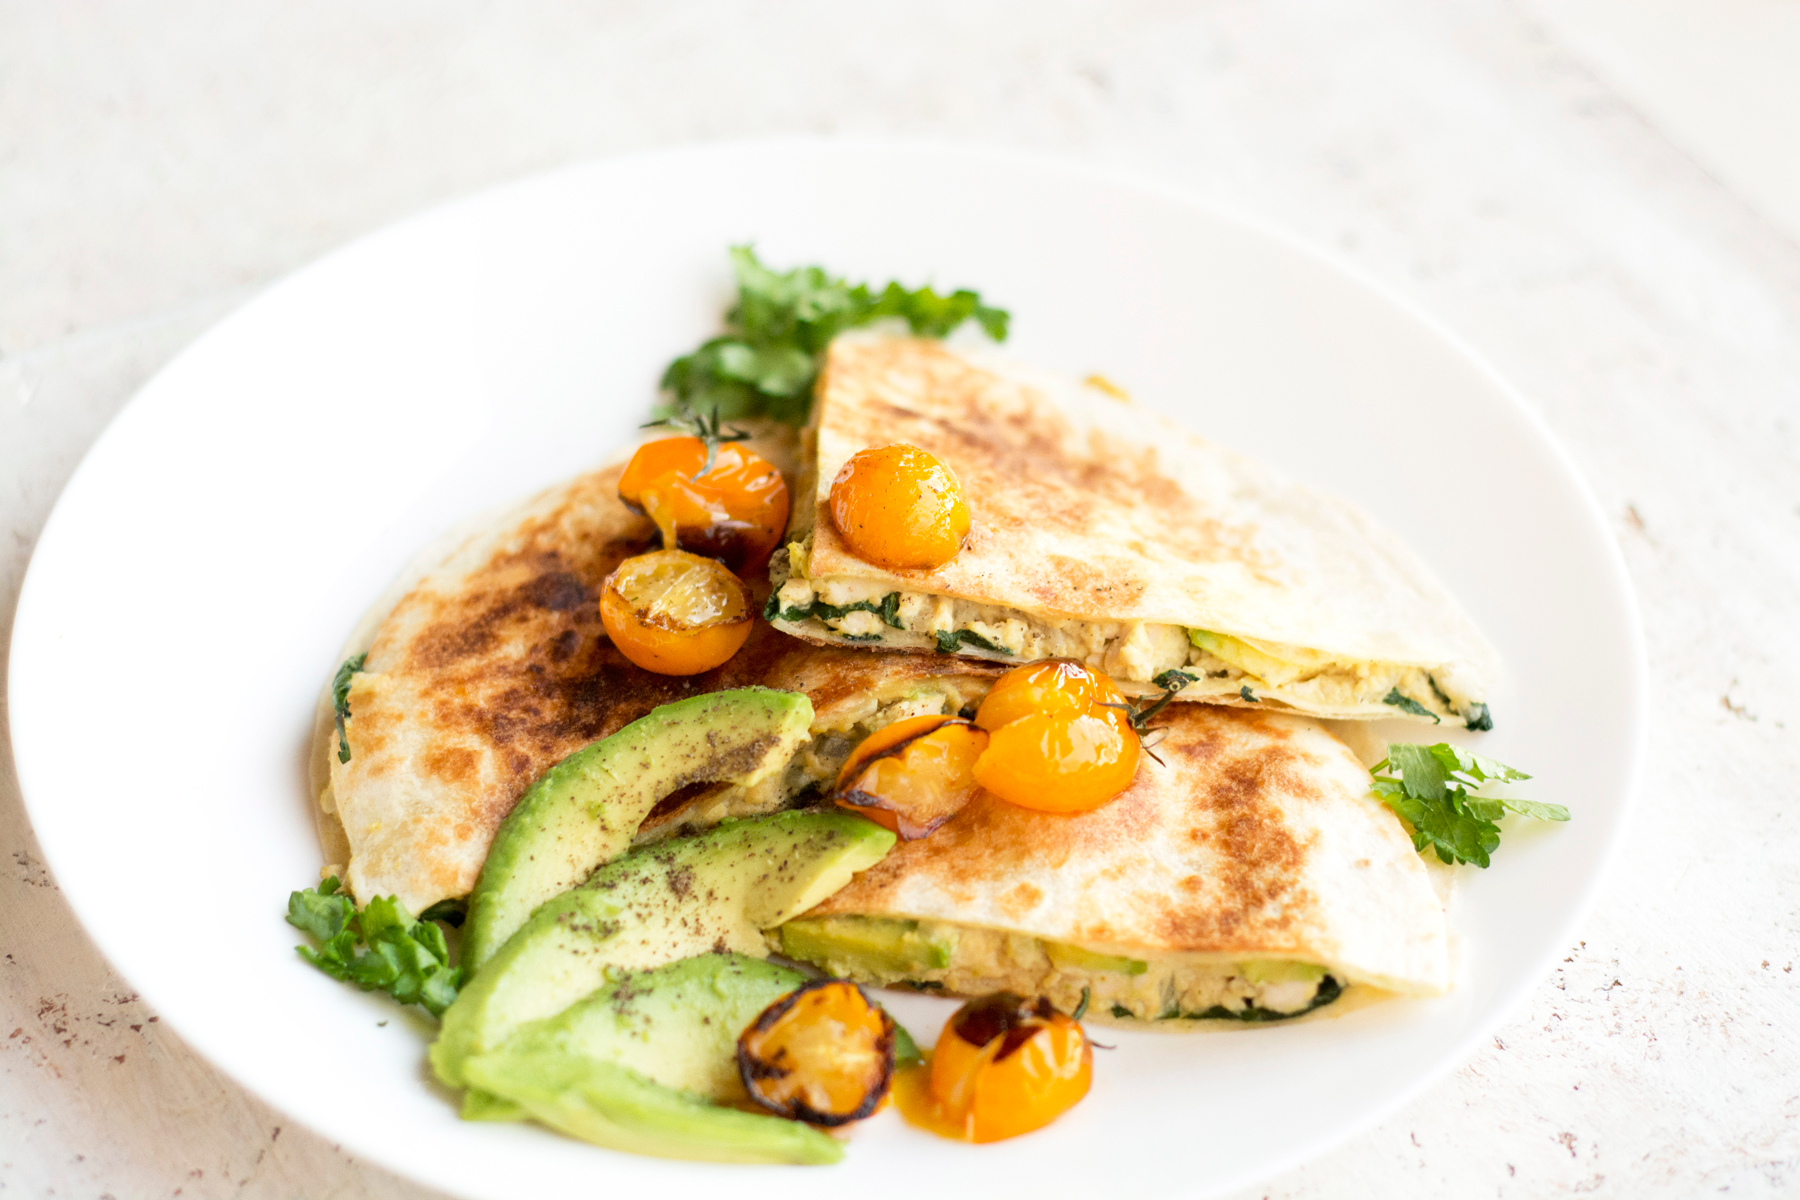 Vegan Breakfast Quesadillas with Scrambled Eggs and Avocado